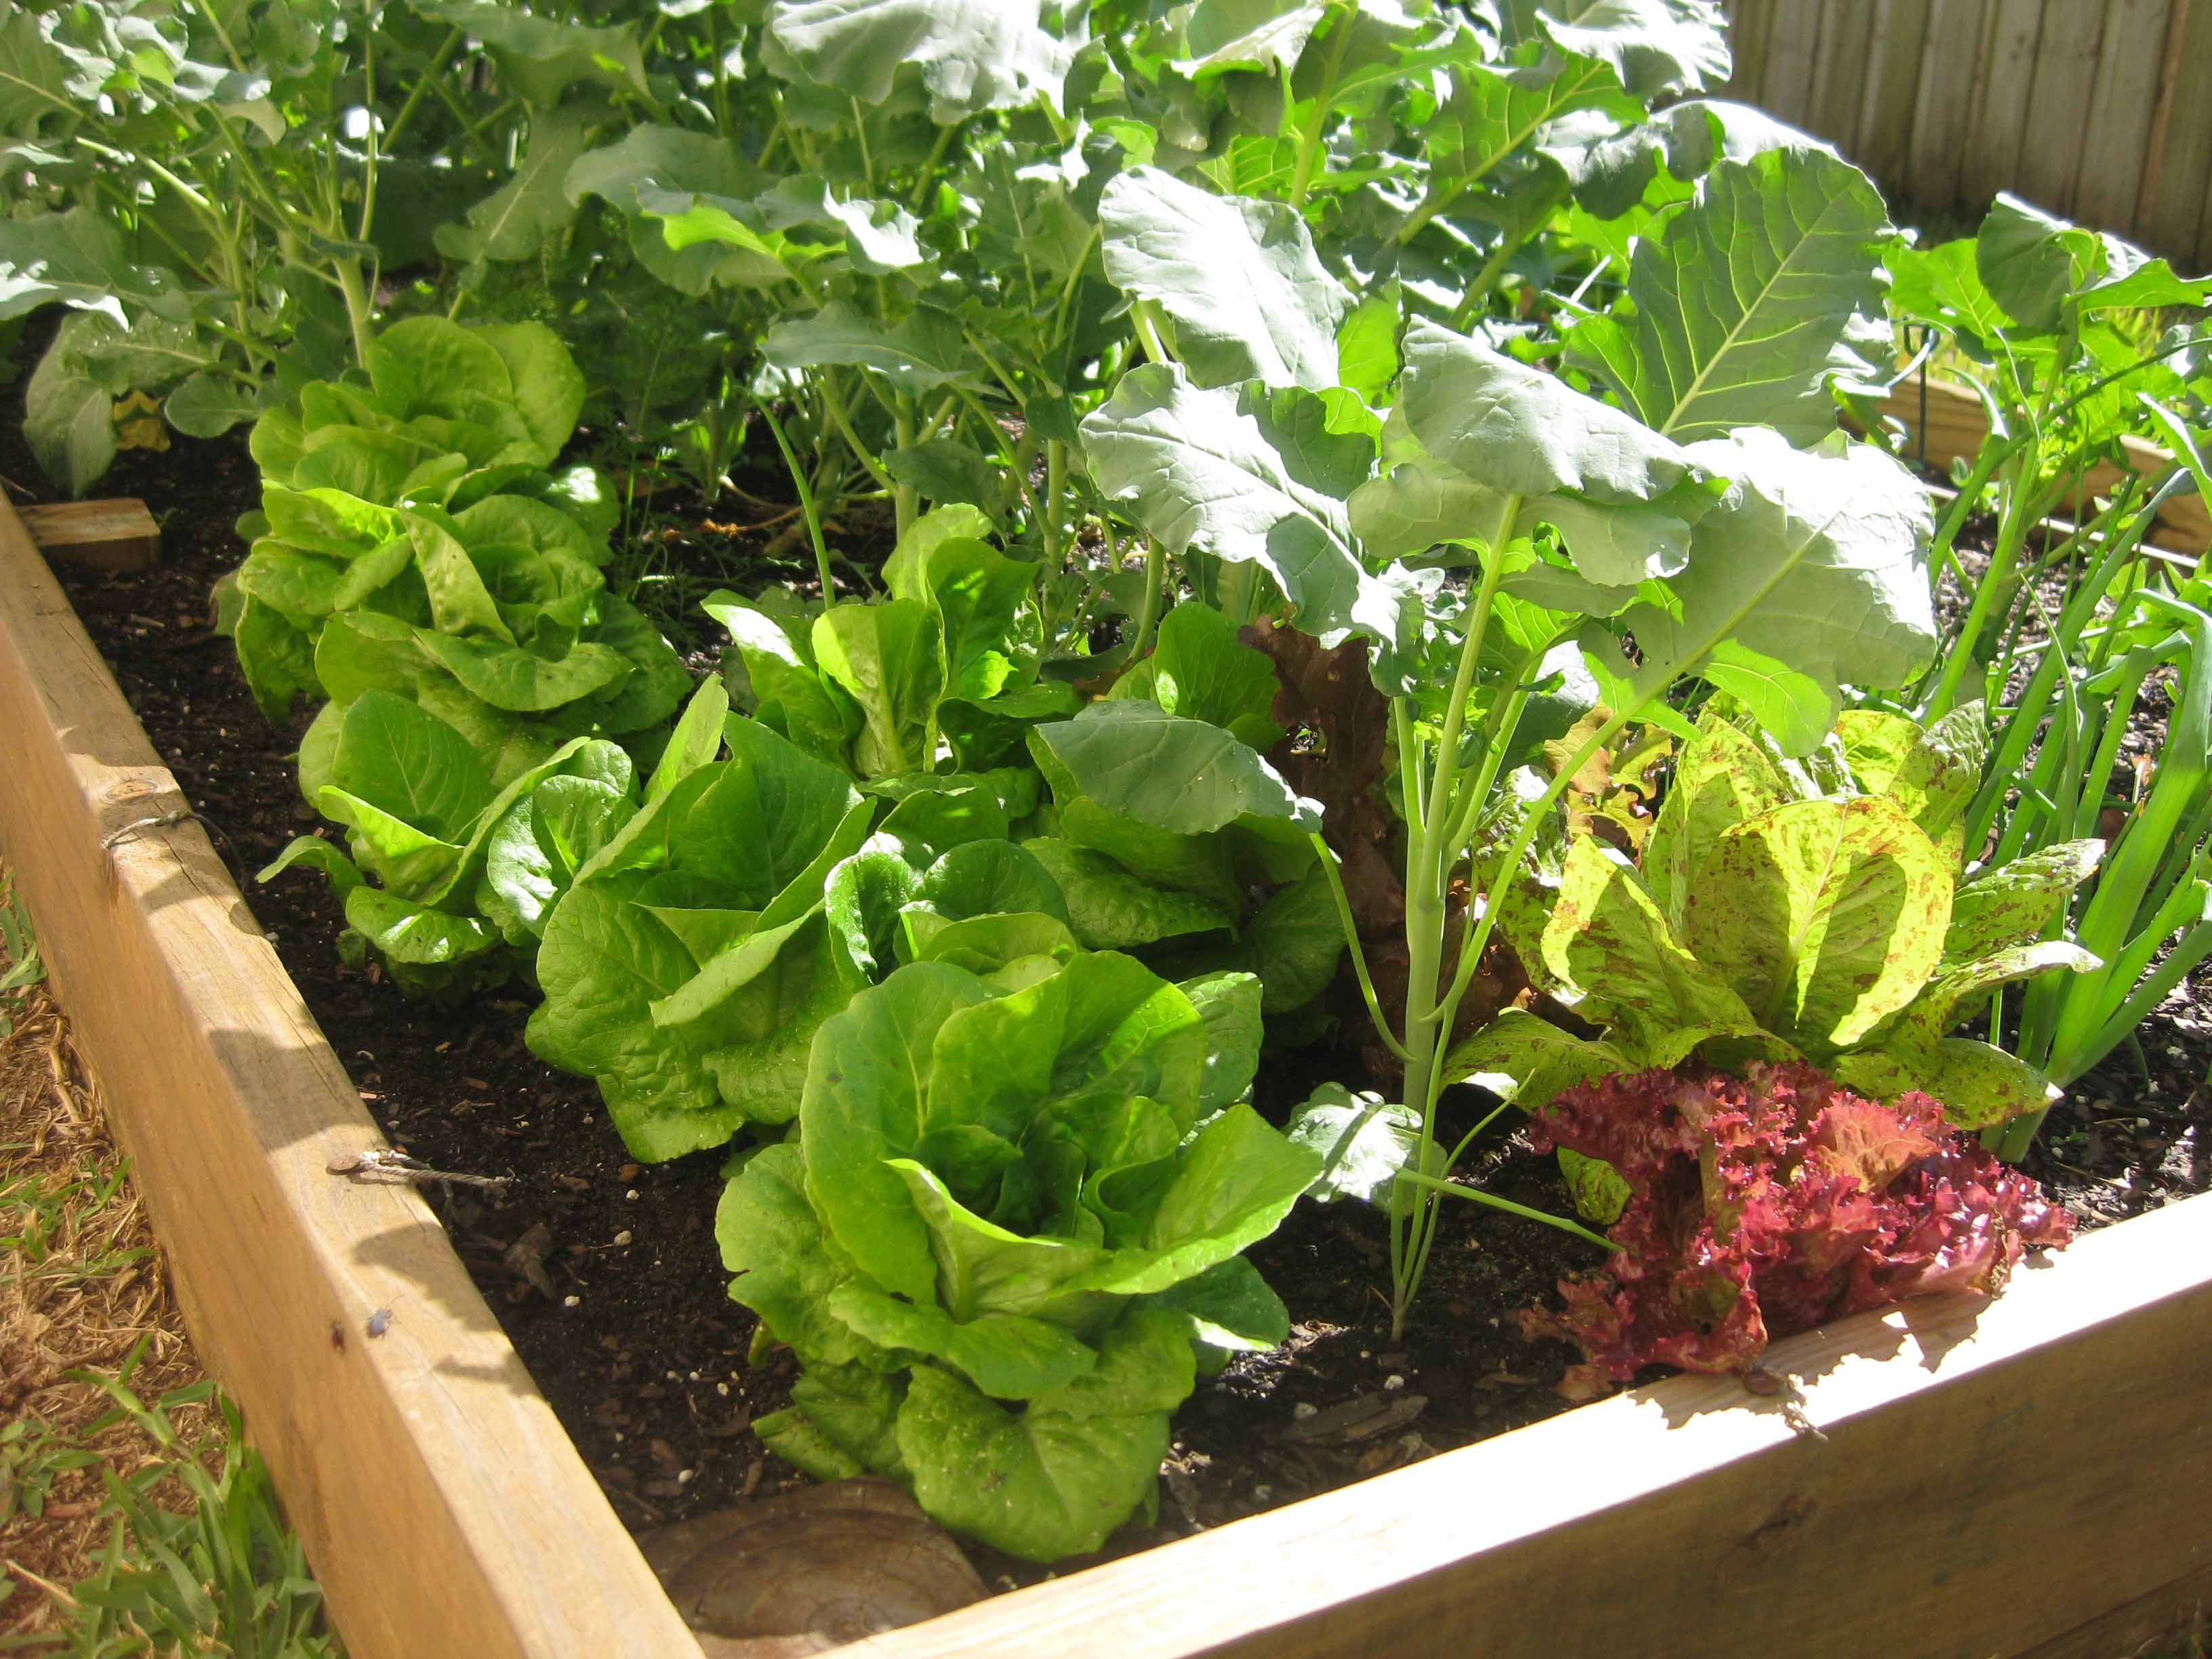 Lovely Ten Florida Gardening Websites Now That Summeru0027s Over And It Will Soon Stop  Hitting 90 Daily, Itu0027s Time To Think About Gardening!